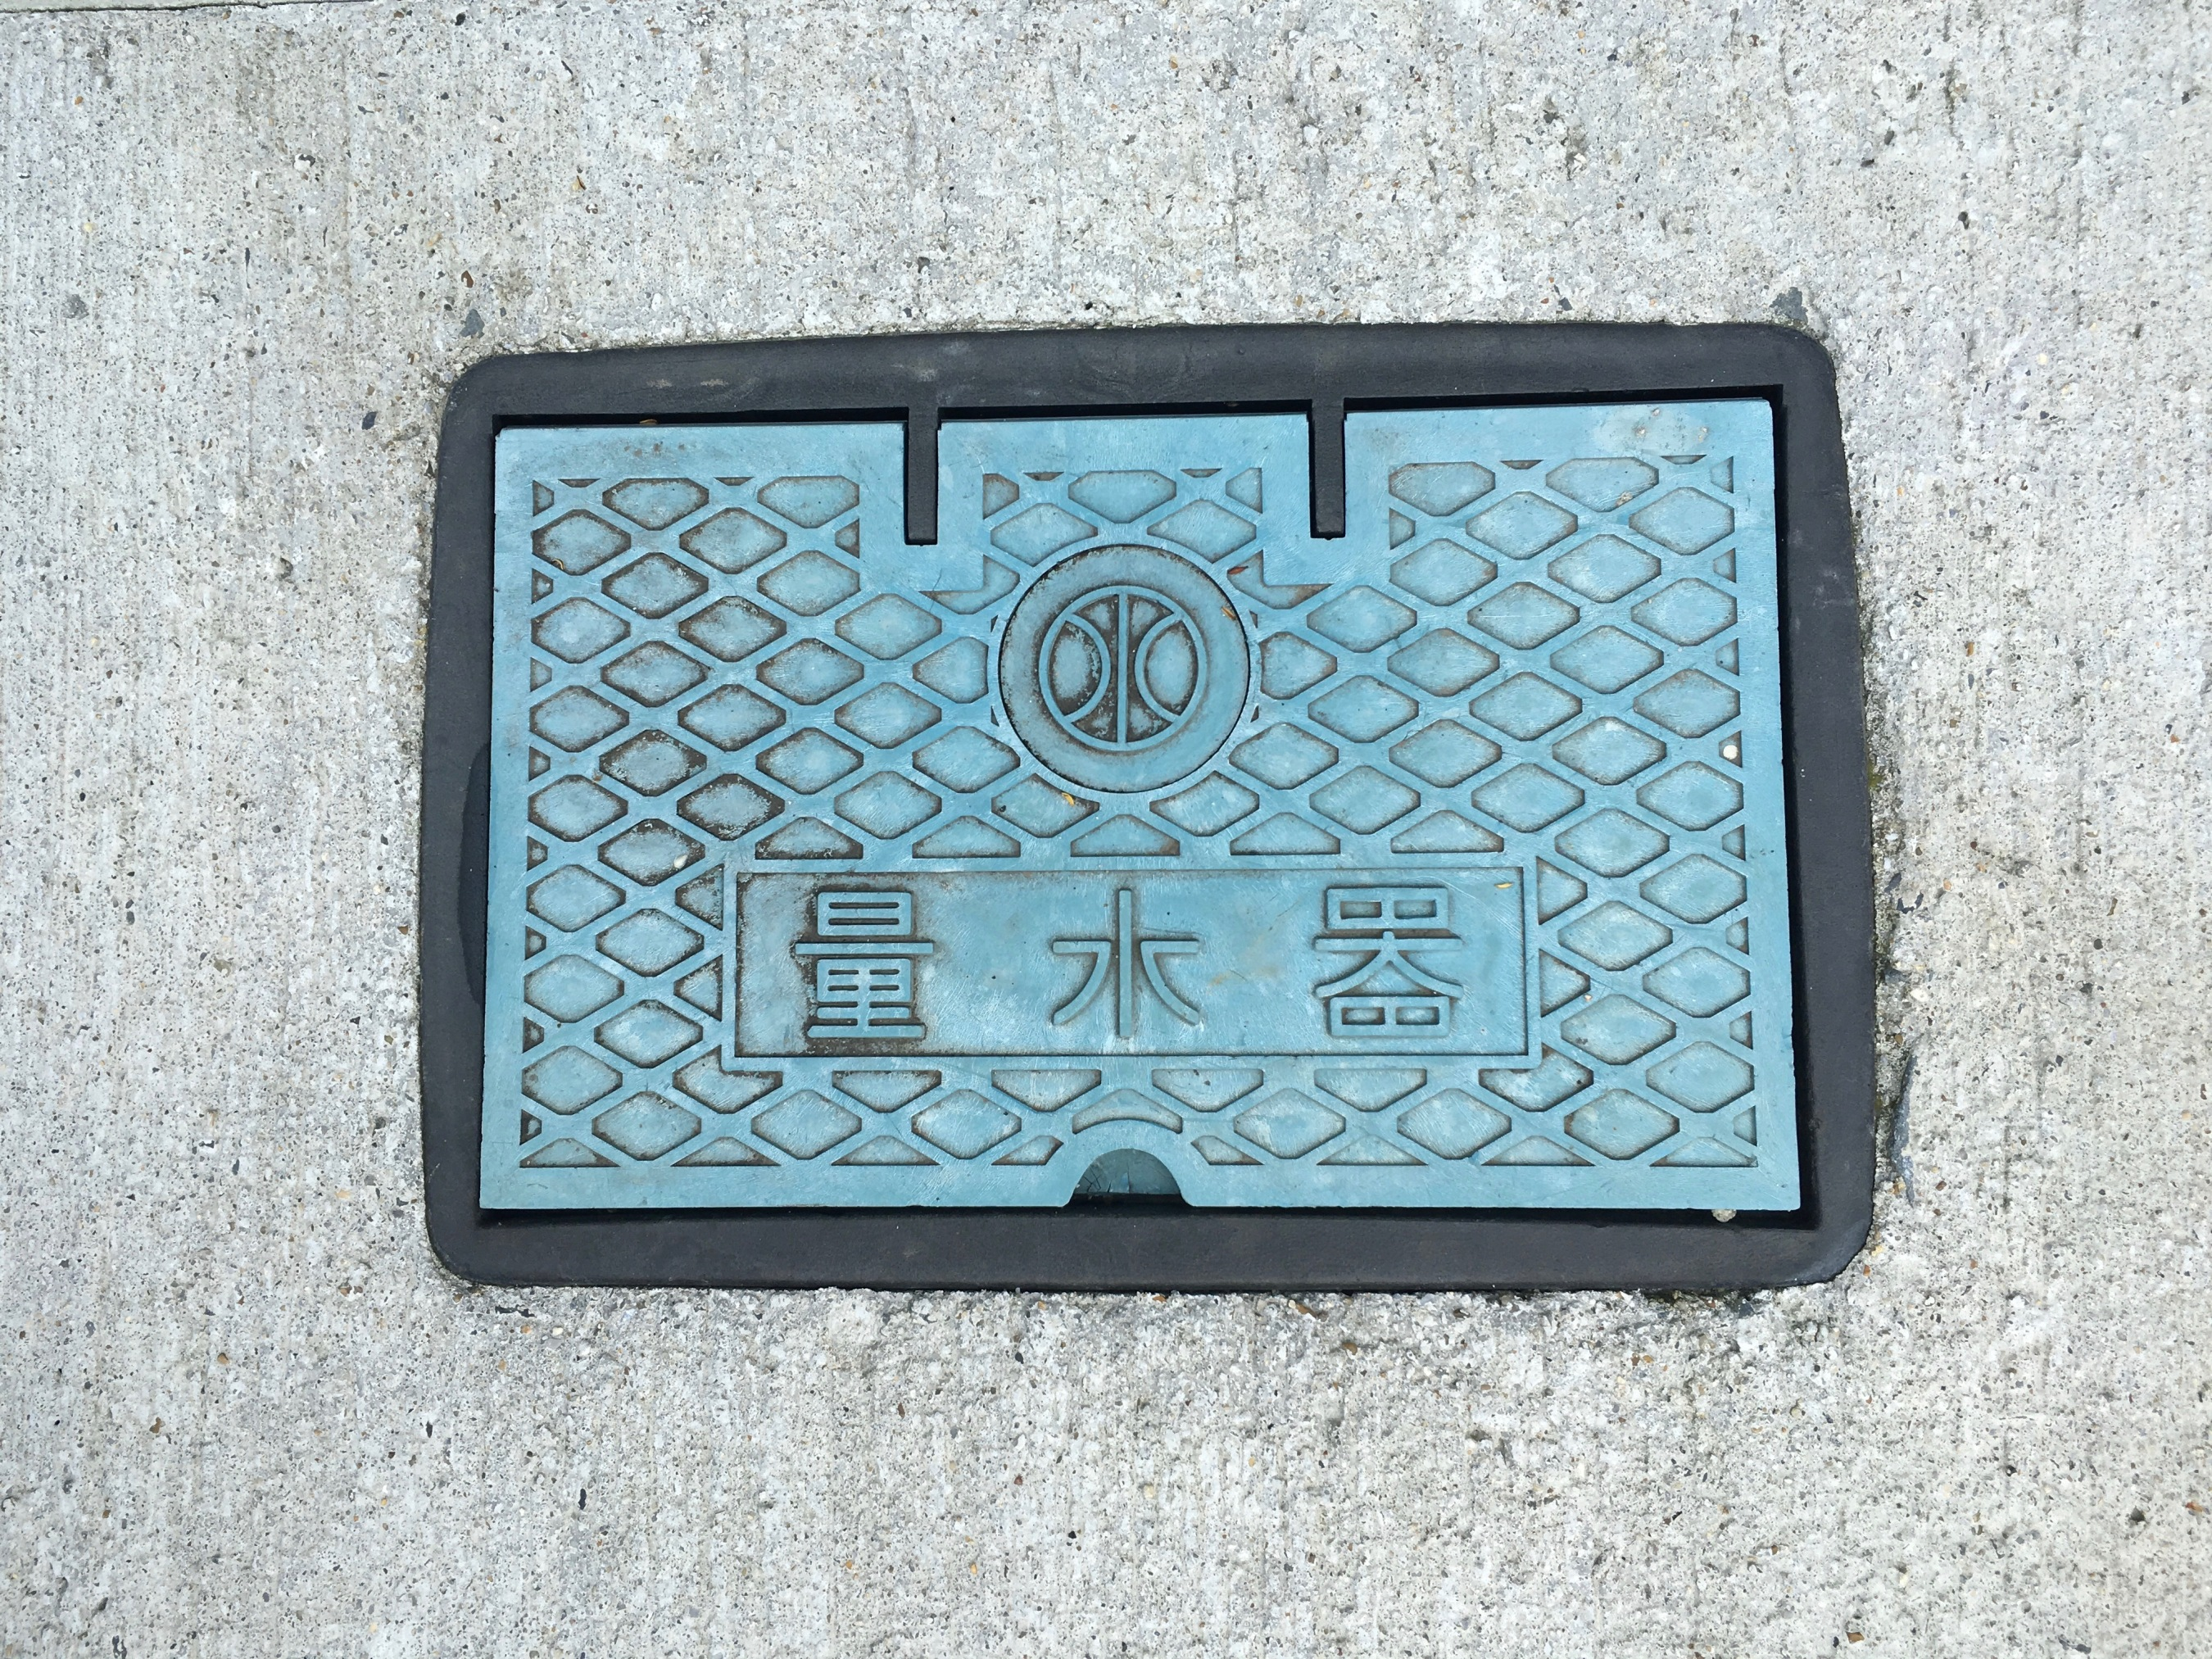 The stylised kanji for water can be seen in these access plates, presumably to the water pipes below. Once you know they are there, you see these access points fairly often while walking around the streets. The water that supplies the towns and cities of Japan will get a boost during the rainy season.